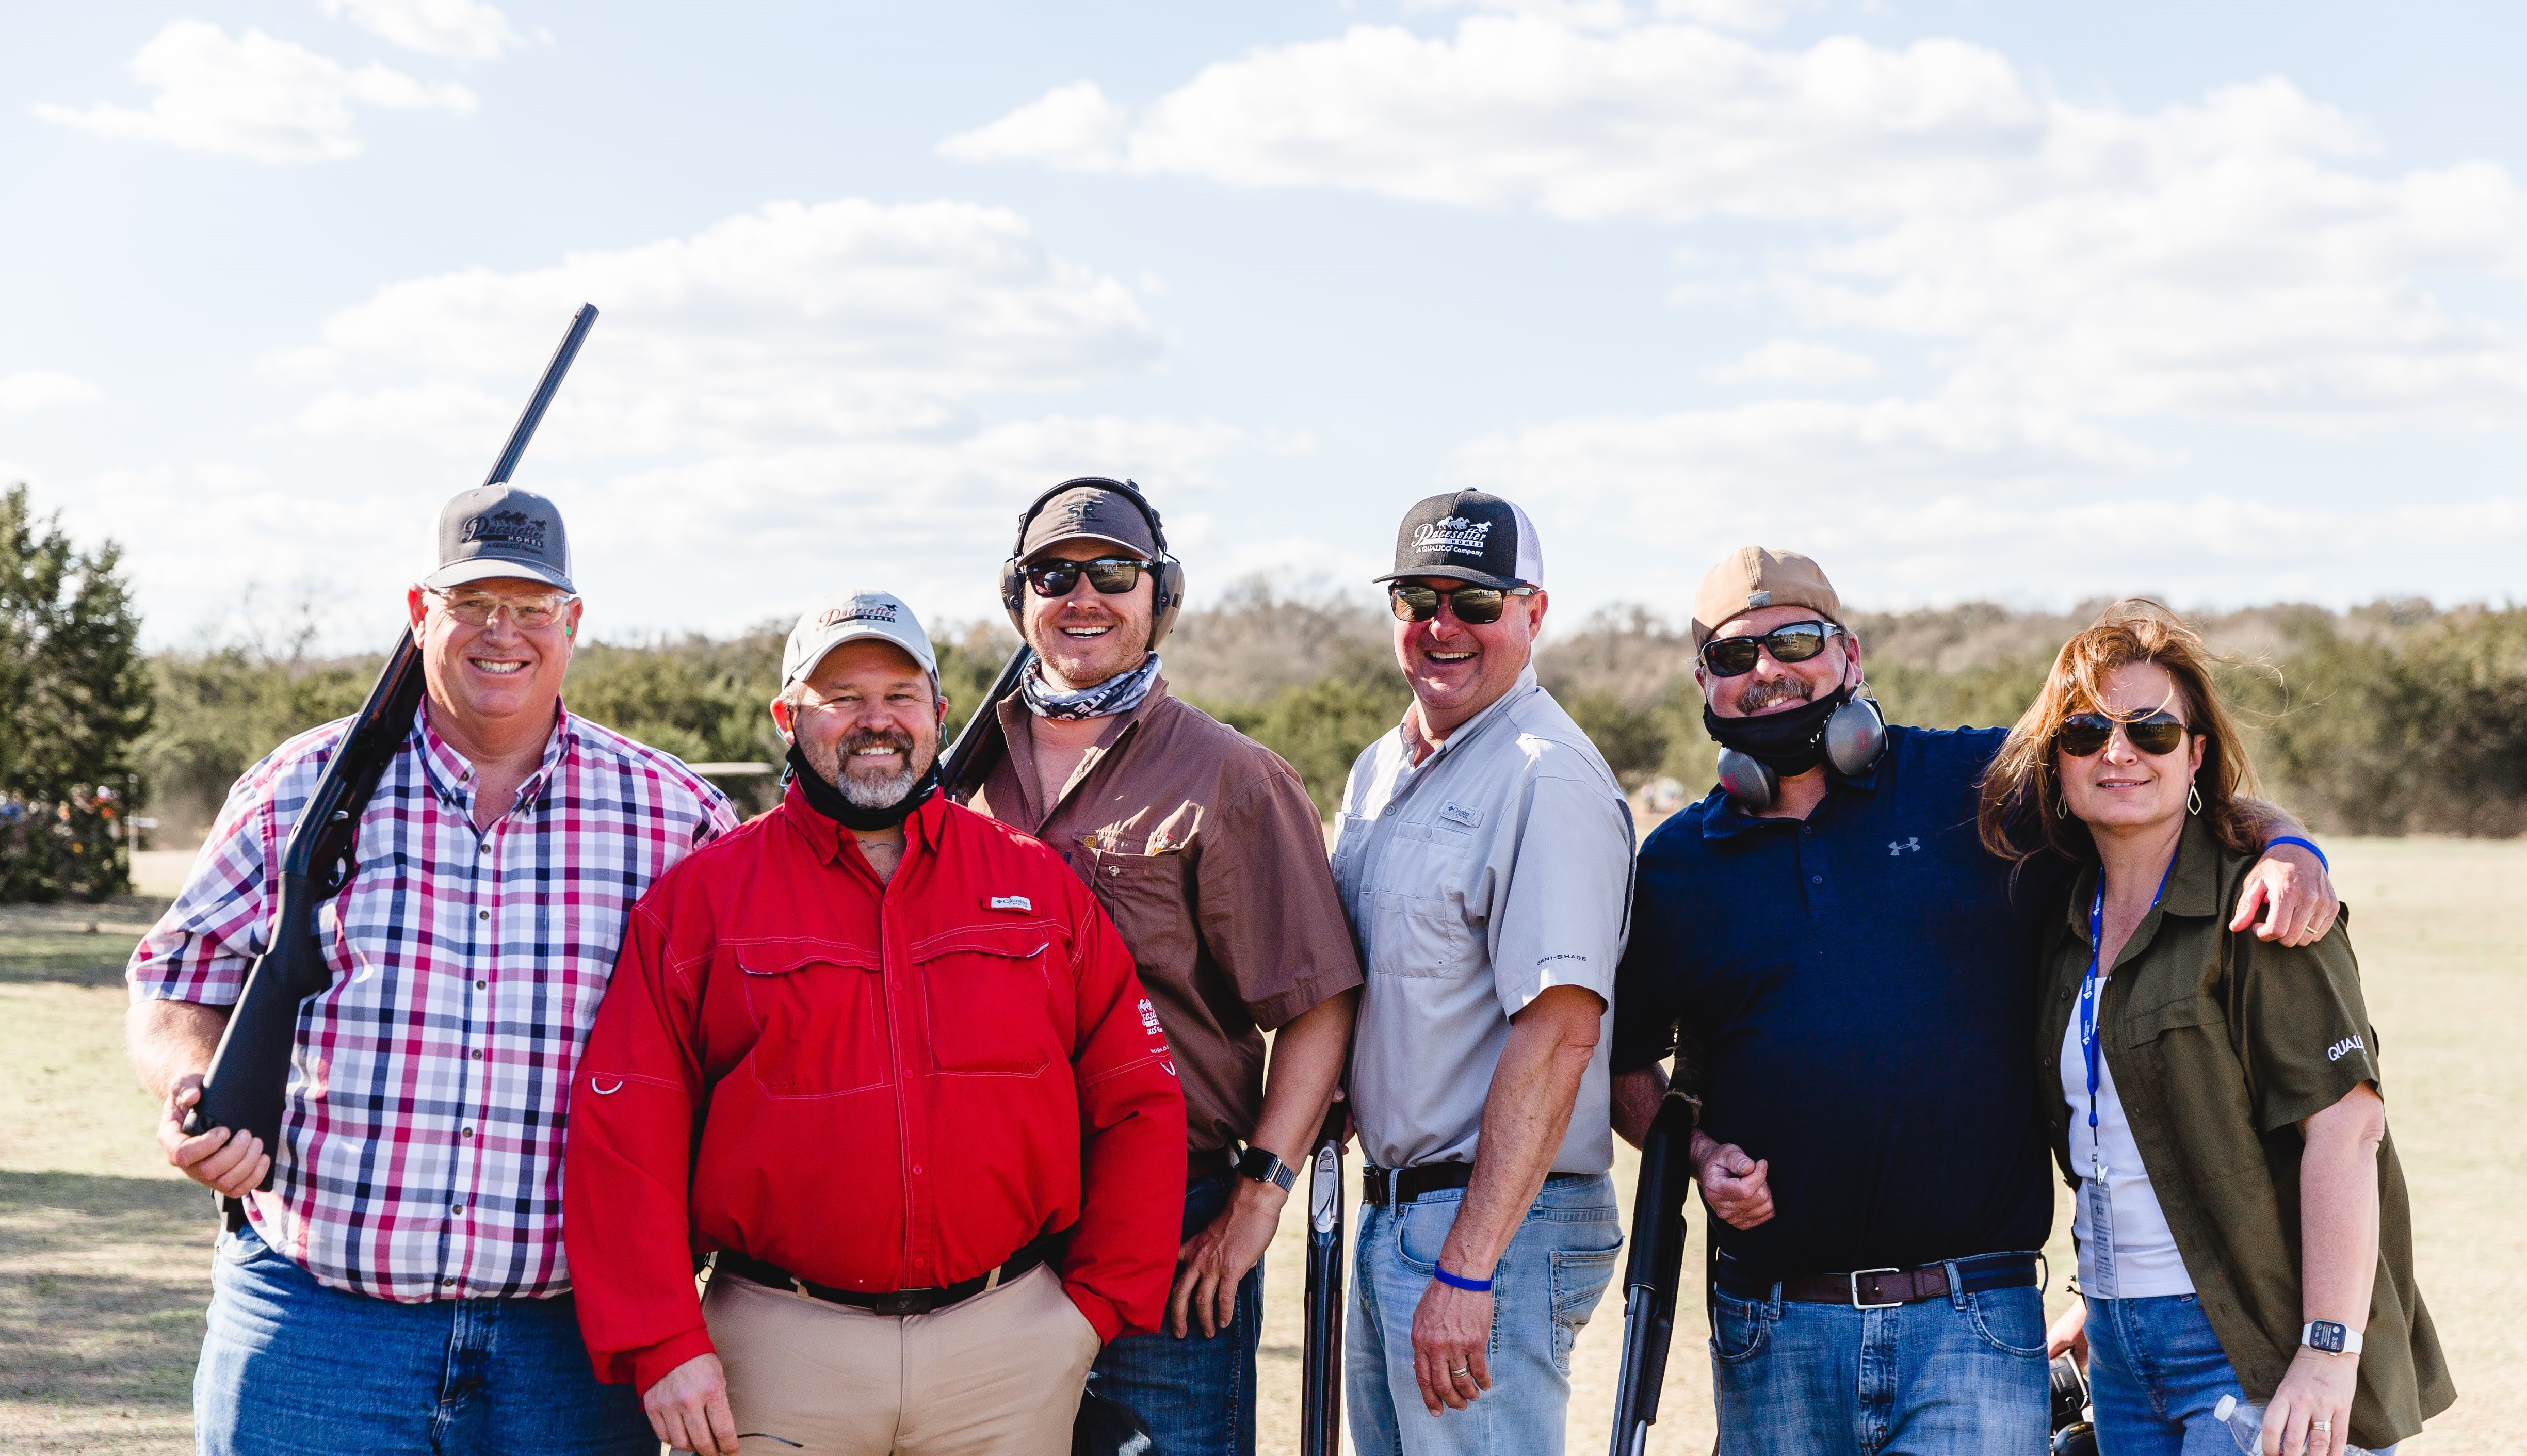 6 Participants from Qualico for Imagine A Way's sixth annual Shoot for the Stars Sporting Clays Tournament